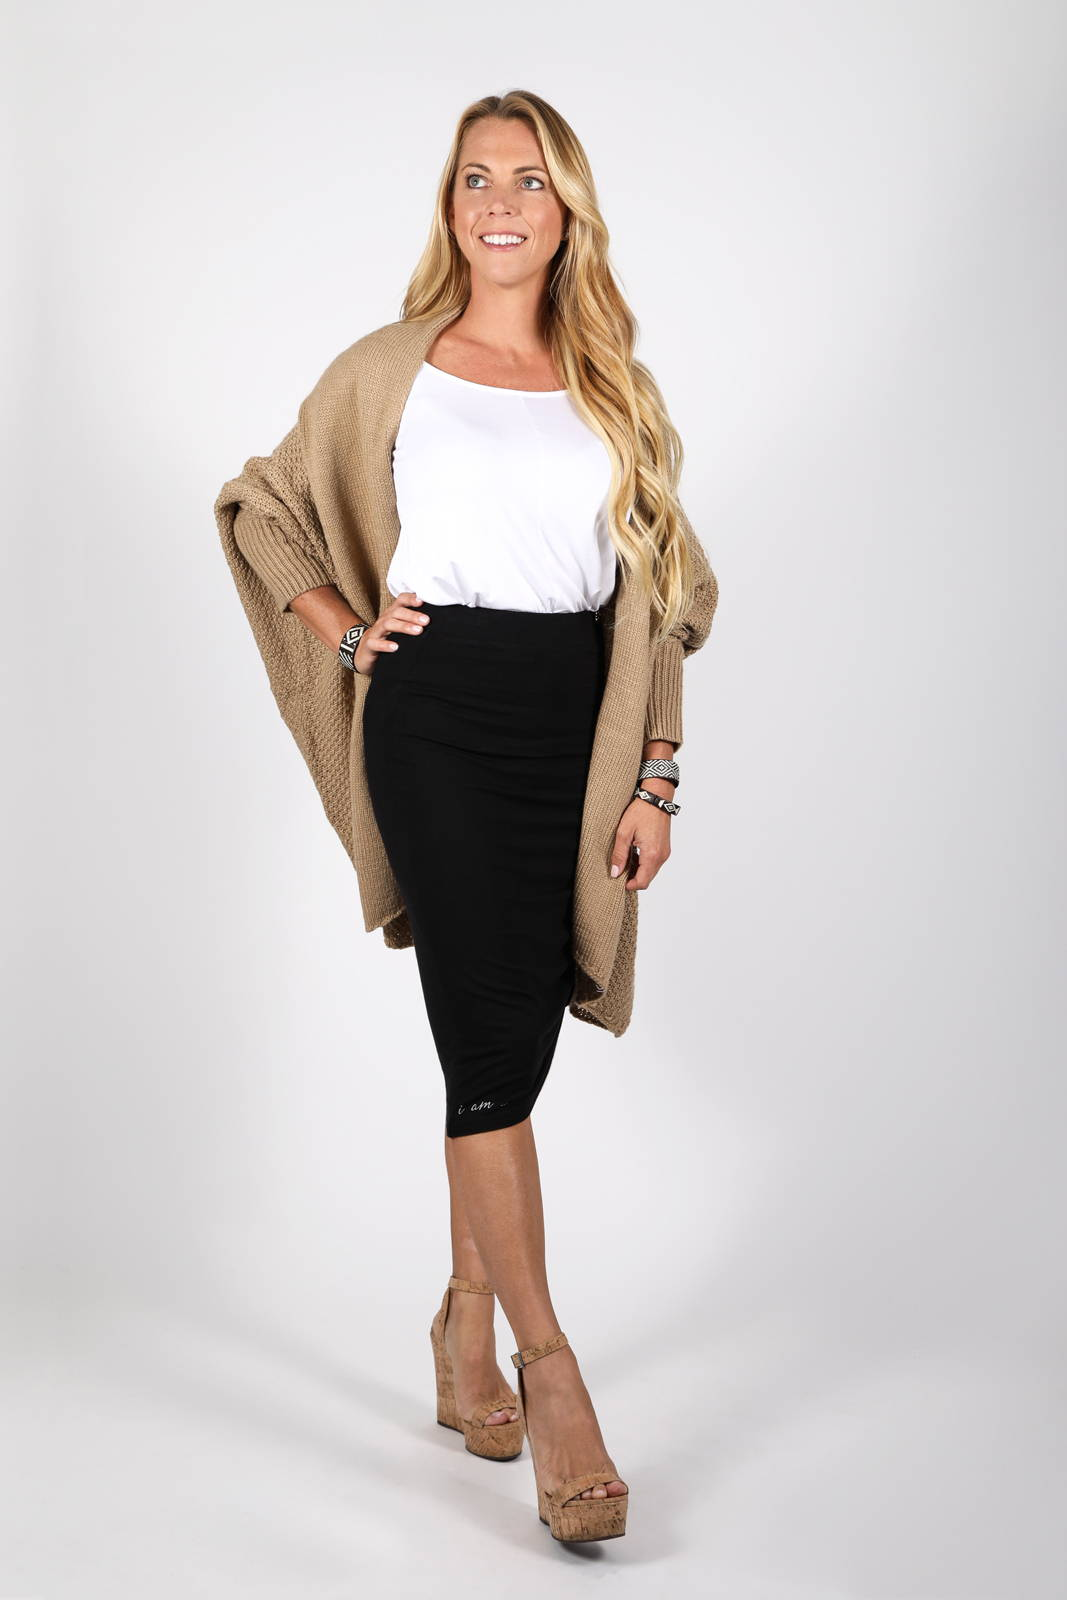 The Zeville Cocoon Cardigan with the Kuma Tie Skirt by illuminative